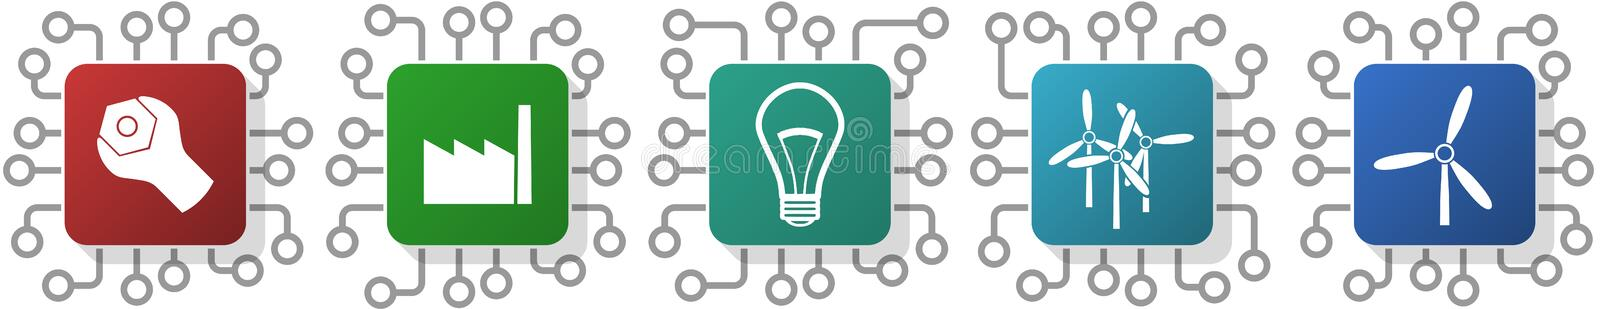 Set of energy, factory, electricity and industry, icons for webdesign and mobile applications, cpu, chip concept vector stock illustration